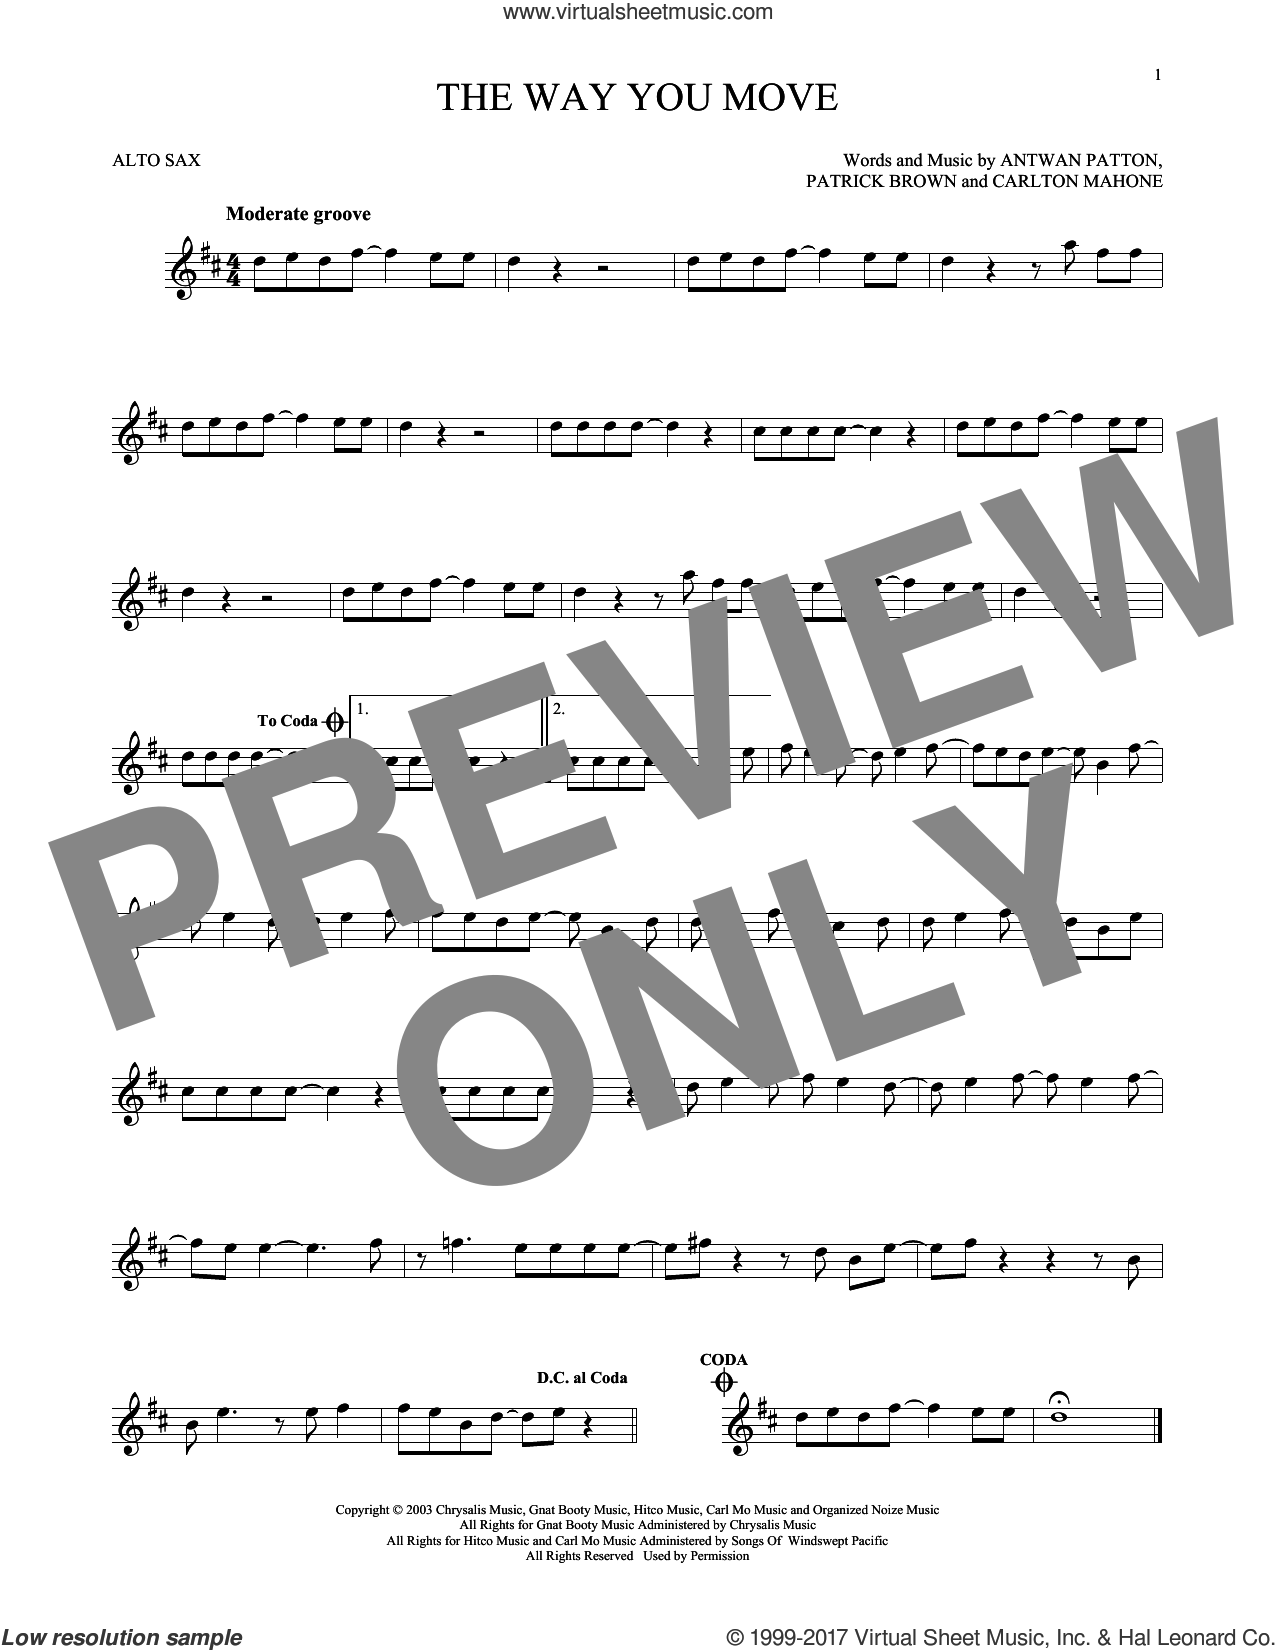 The Way You Move sheet music for alto saxophone solo by Outkast featuring Sleepy Brown, Antwon Patton, Cartlon Mahone and Patrick Brown, intermediate skill level